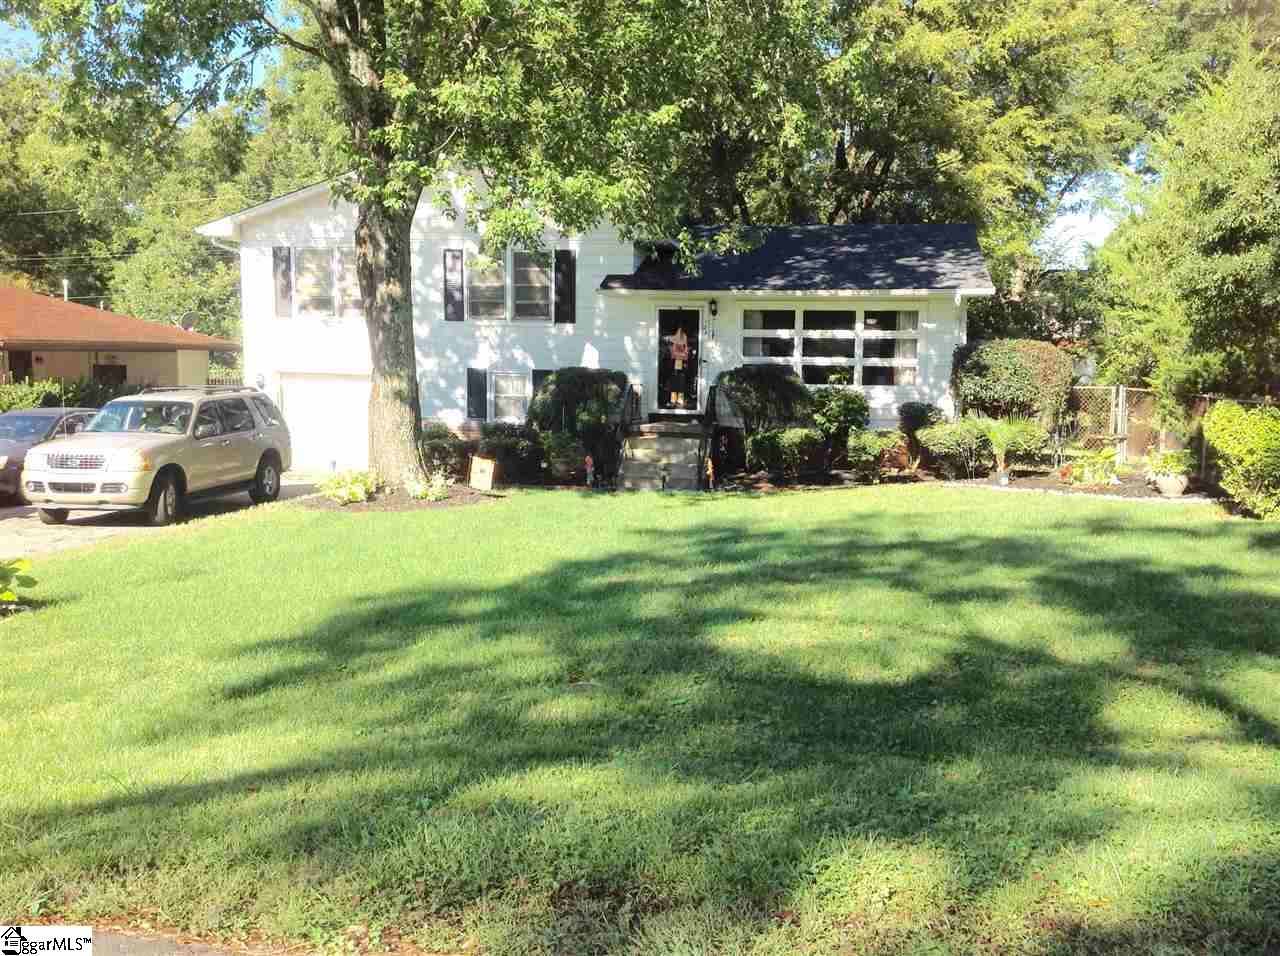 Location, location, location!!! This 3 bedroom 1 bath house is close to everything. Minutes from downtown Greenville, restuarants, shopping, Prisma Healthcare (main campus), and I-85. Has a new roof, beautiful original hardwood floors and a nice sized fenced backyard. Don't miss this deal!